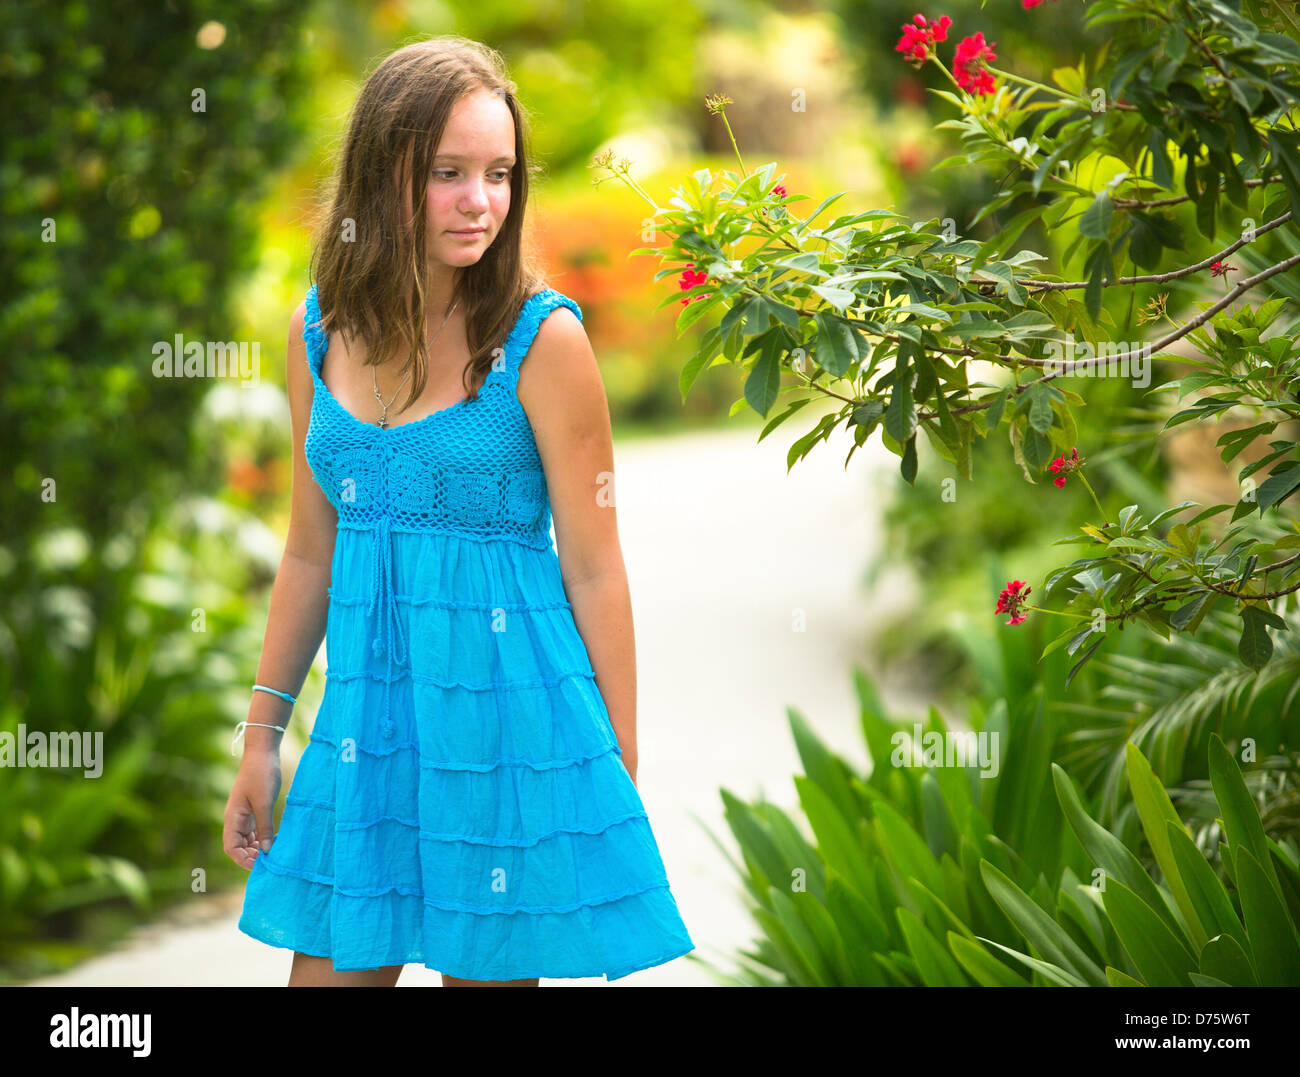 Teen-girl in the spring garden. - Stock Image